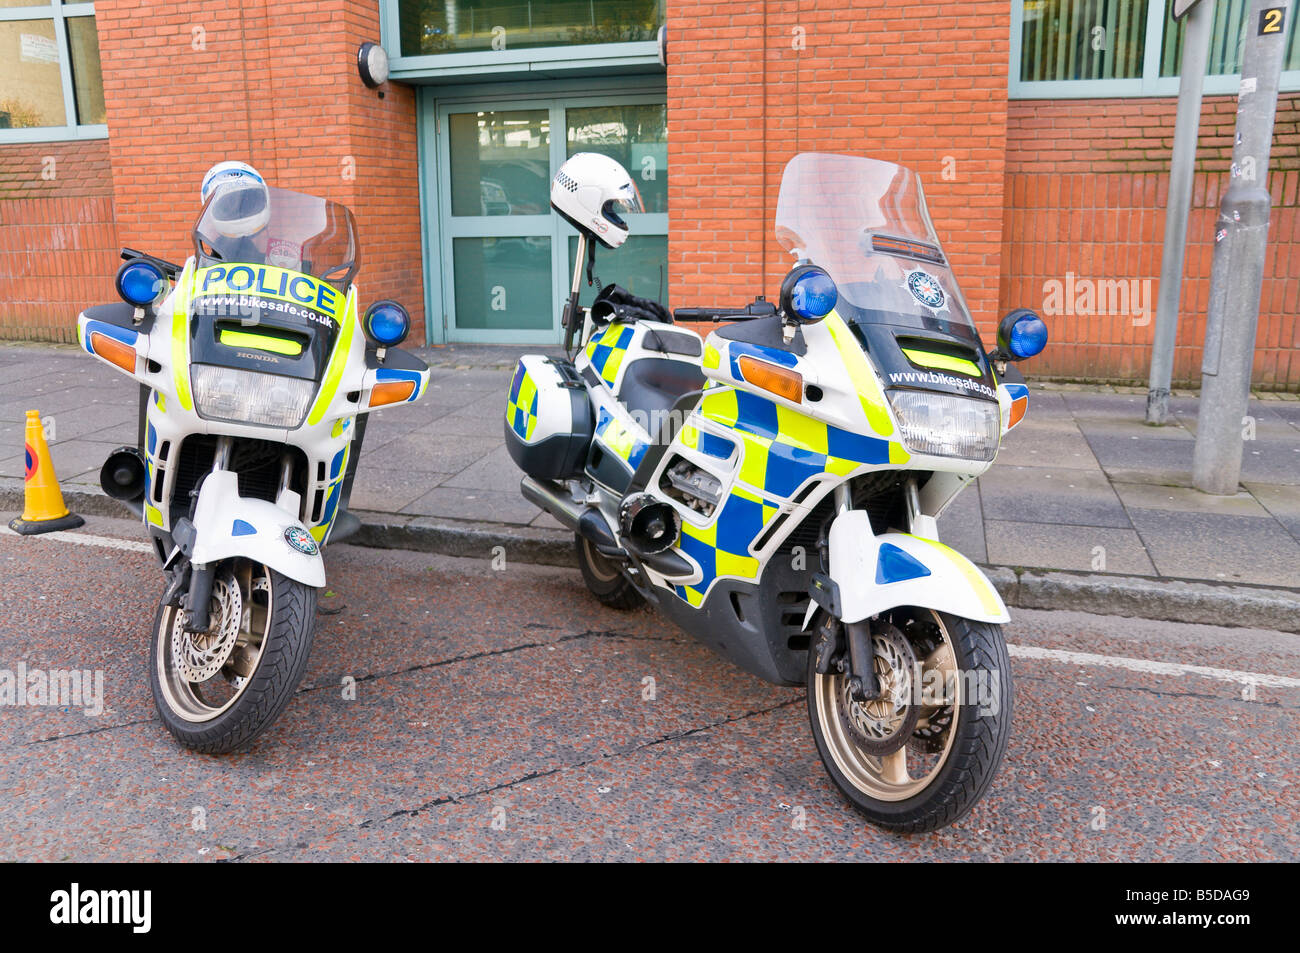 Police Service of Northern Ireland (PSNI) motorcycles parked at a roadside with helmets on rear - Stock Image